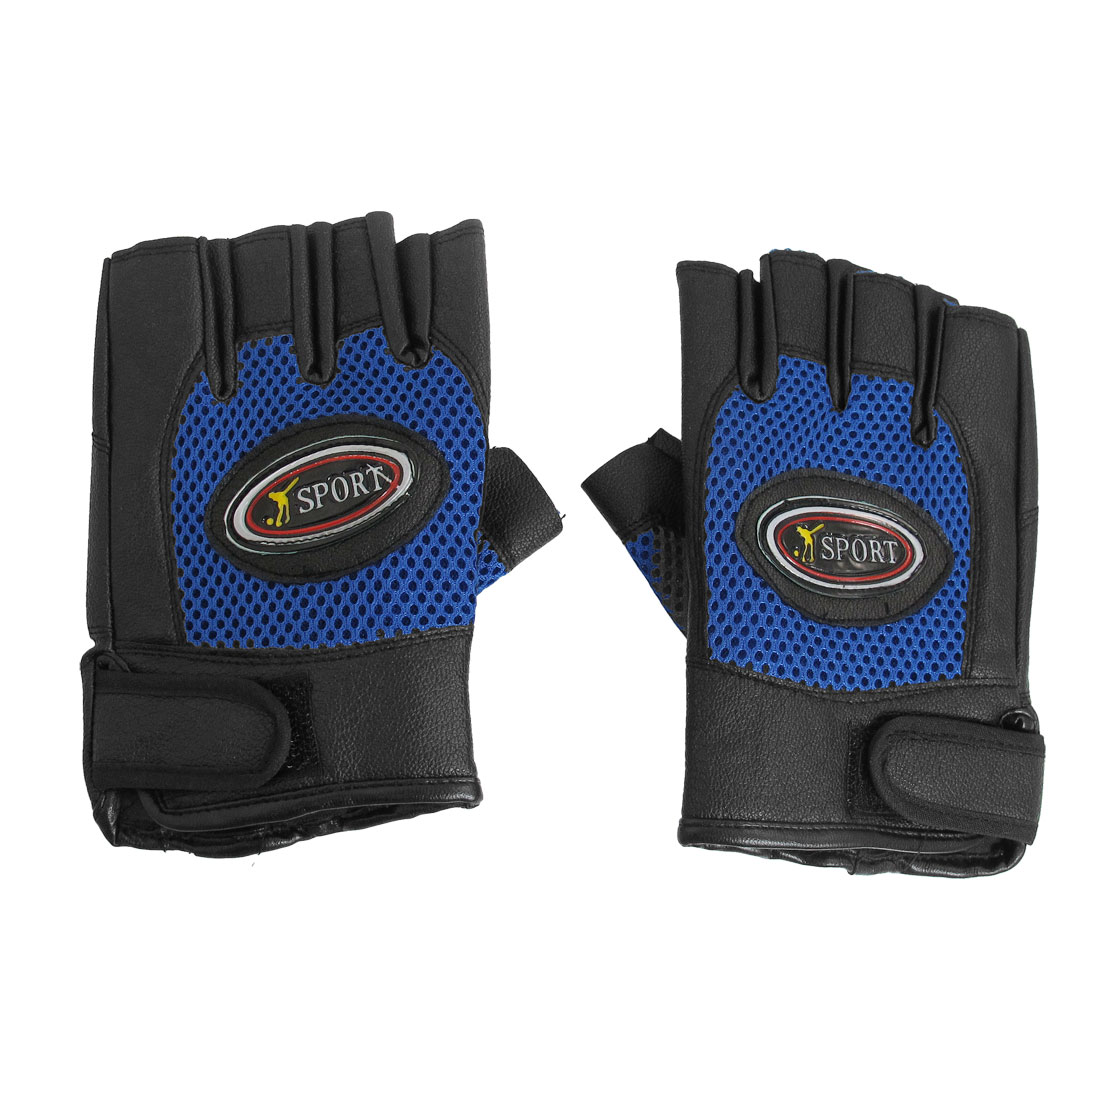 Adult Blue Black Mountain Bike Driving Half Finger Glove Pair